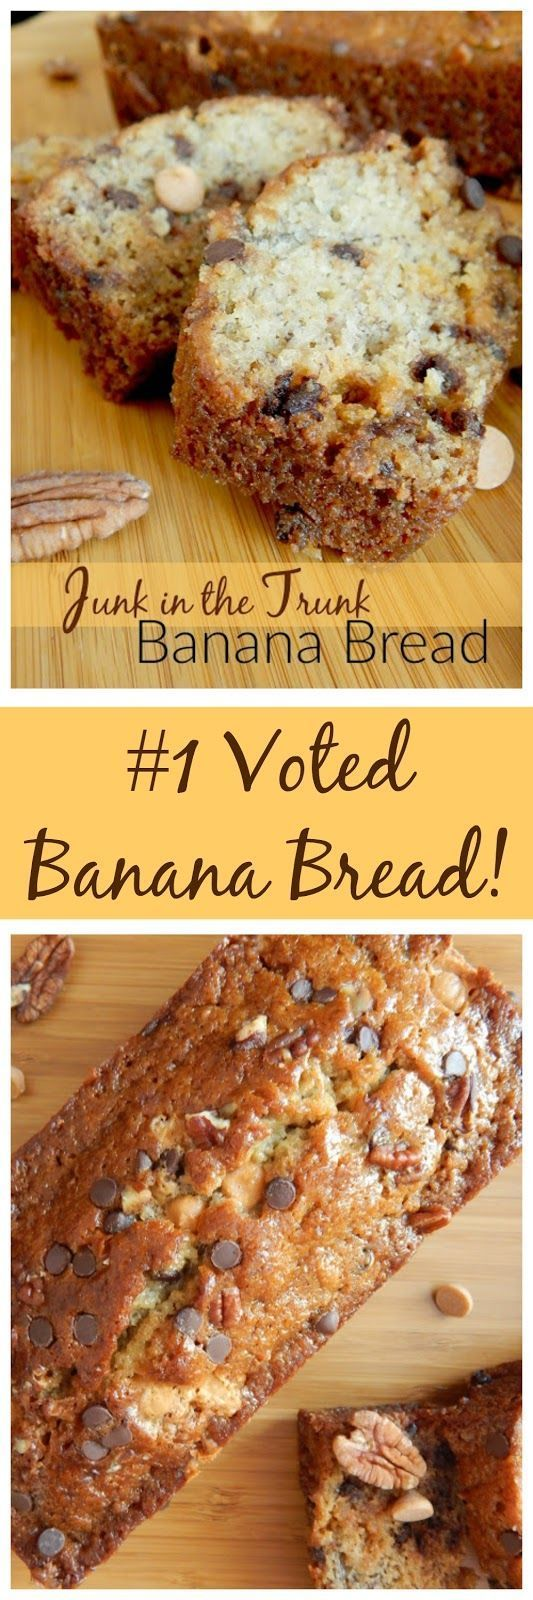 junk in the trunk banana bread (sweetandsavoryfood.com)